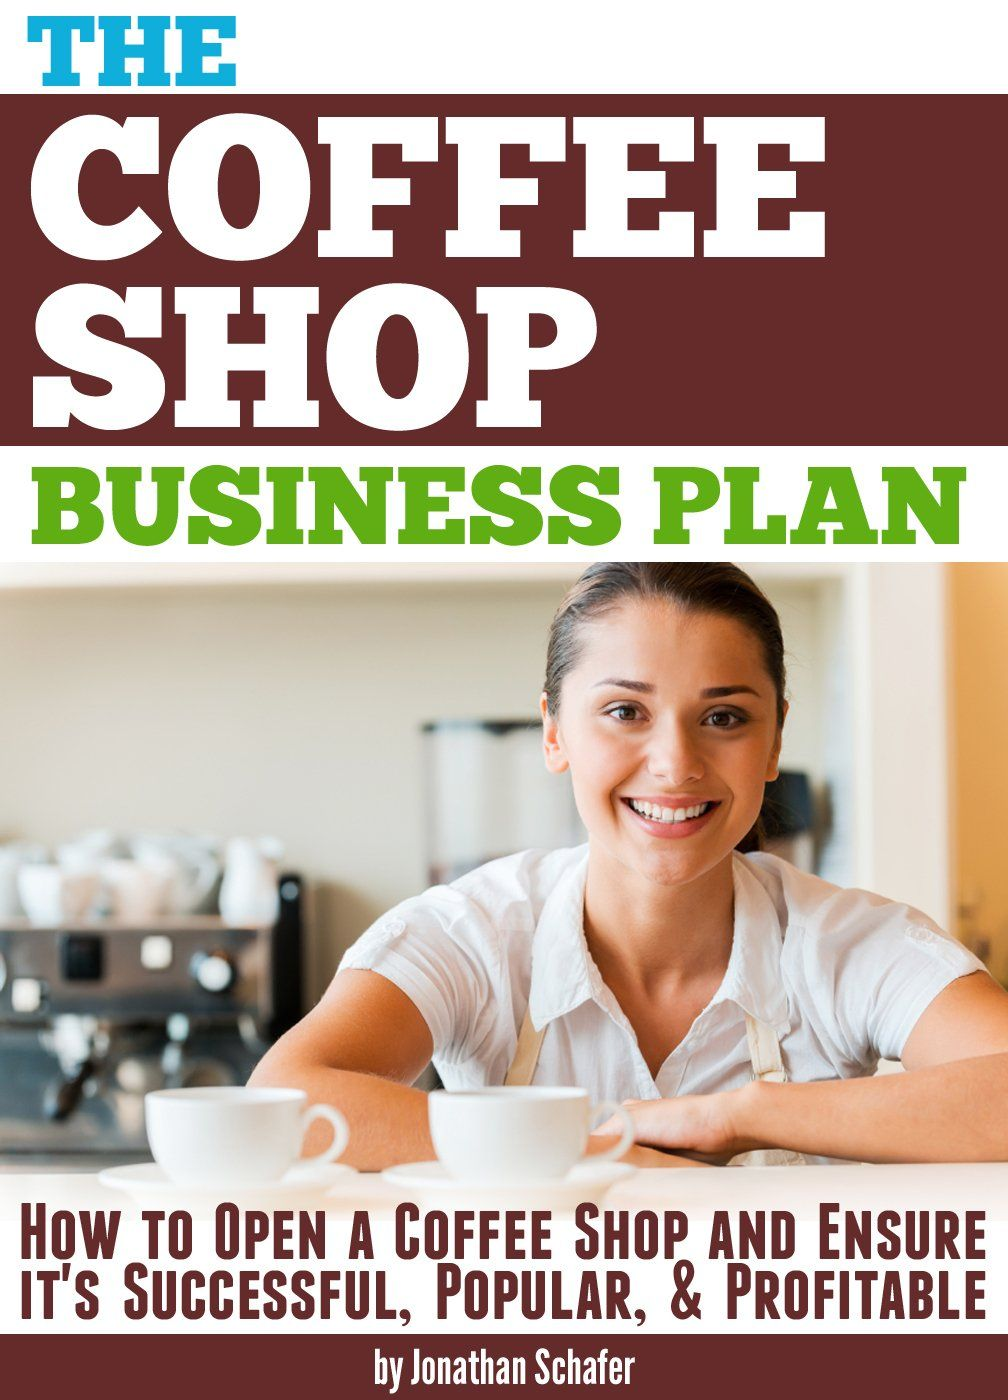 opening a coffee shop We started this page because many people ask us where to start when opening a coffee shop what is the first step who to contact first this is a tricky question because it depends on your circumstances but we try to answer it the best we can.